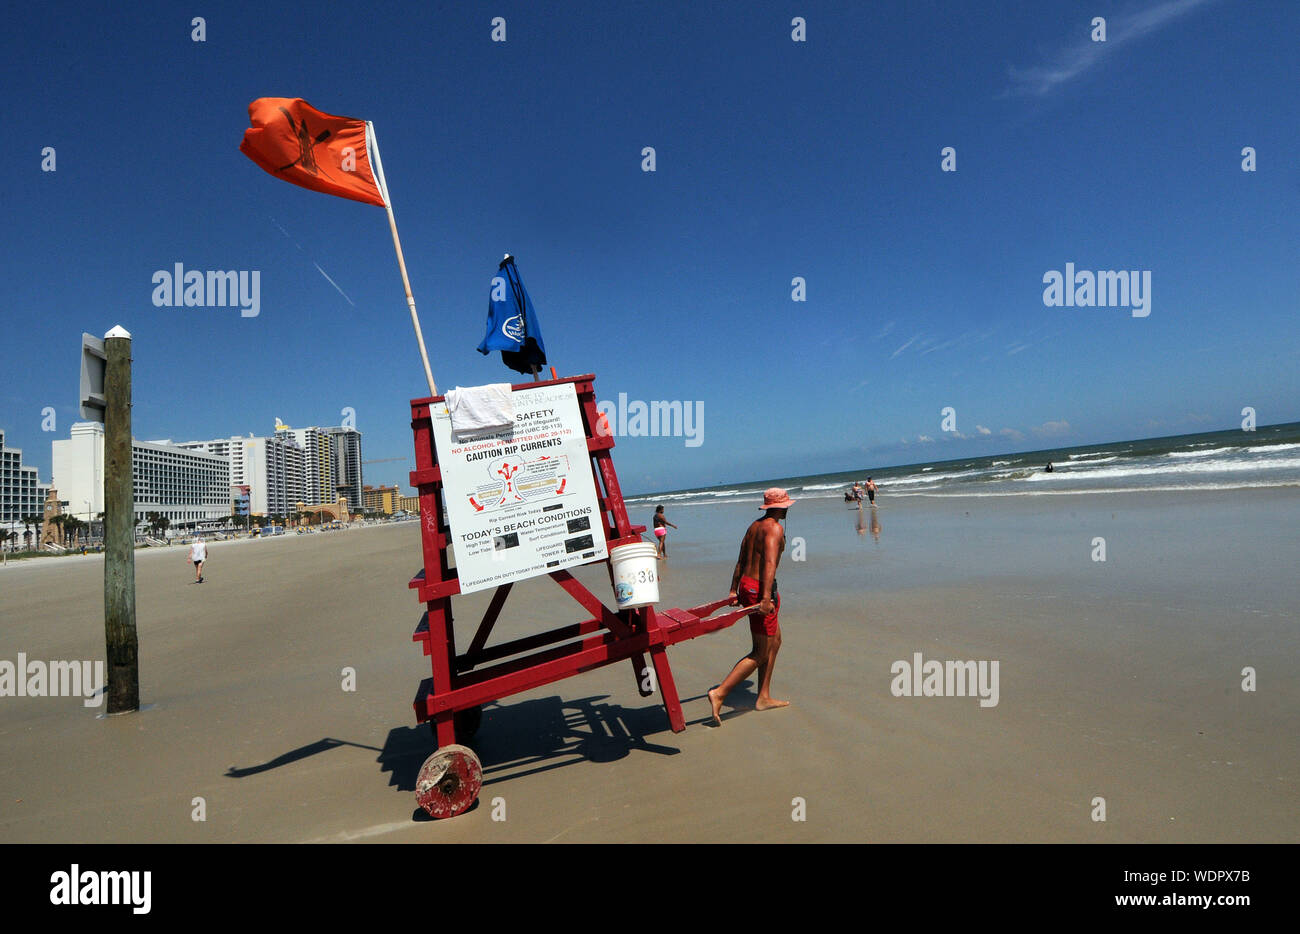 Titusville, FL, USA. 29th Aug, 2019. A lifeguard moves his chair on a calm and quiet beach several days ahead of the Hurricane Dorian which is expected to become a Category 4 hurricane before making landfall in Florida on Labor Day. Credit: Paul Hennessy/SOPA Images/ZUMA Wire/Alamy Live News Stock Photo